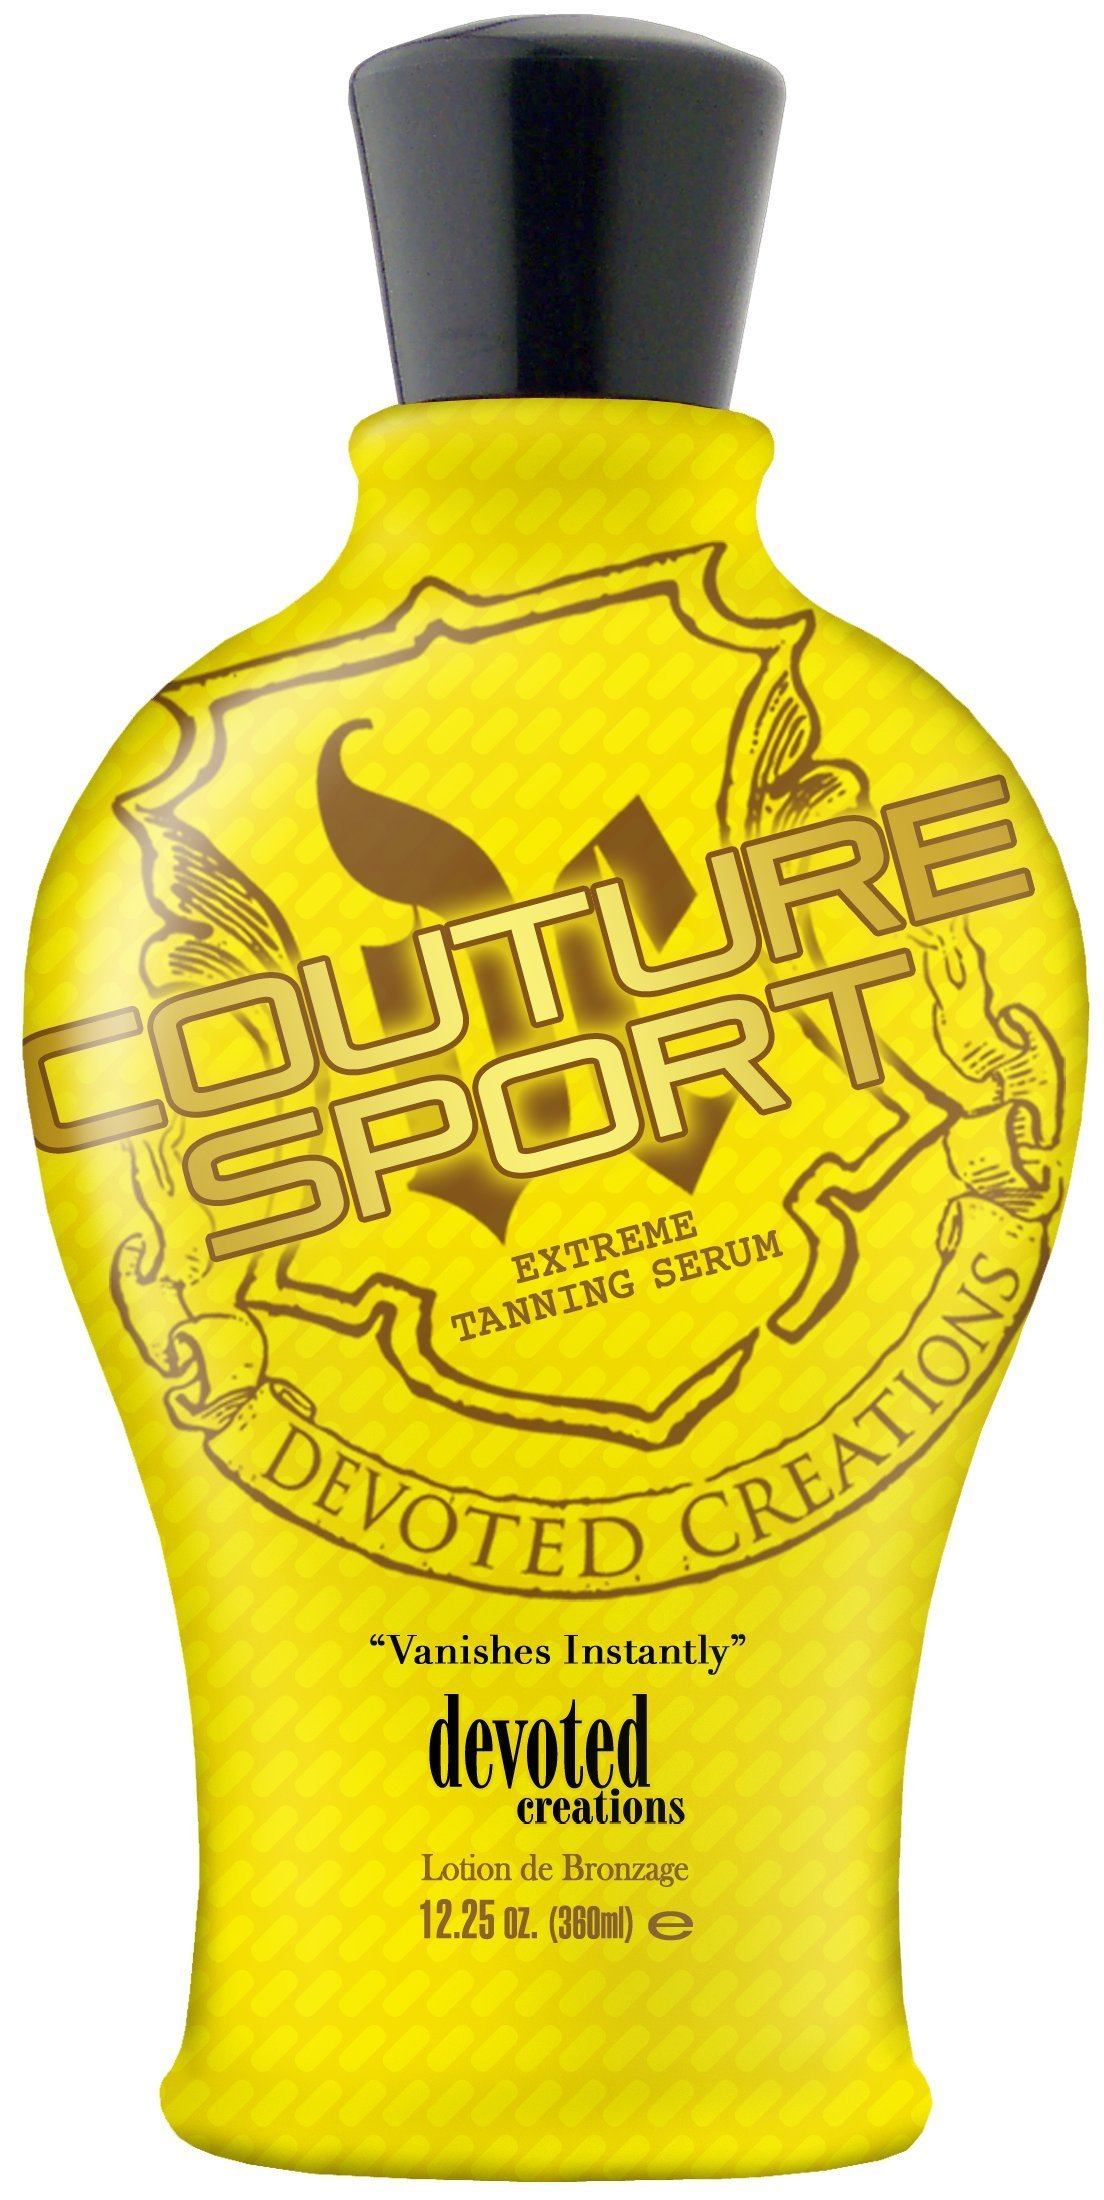 Devoted Creations Couture Sport Extreme Tanning Serum Tanning Lotion